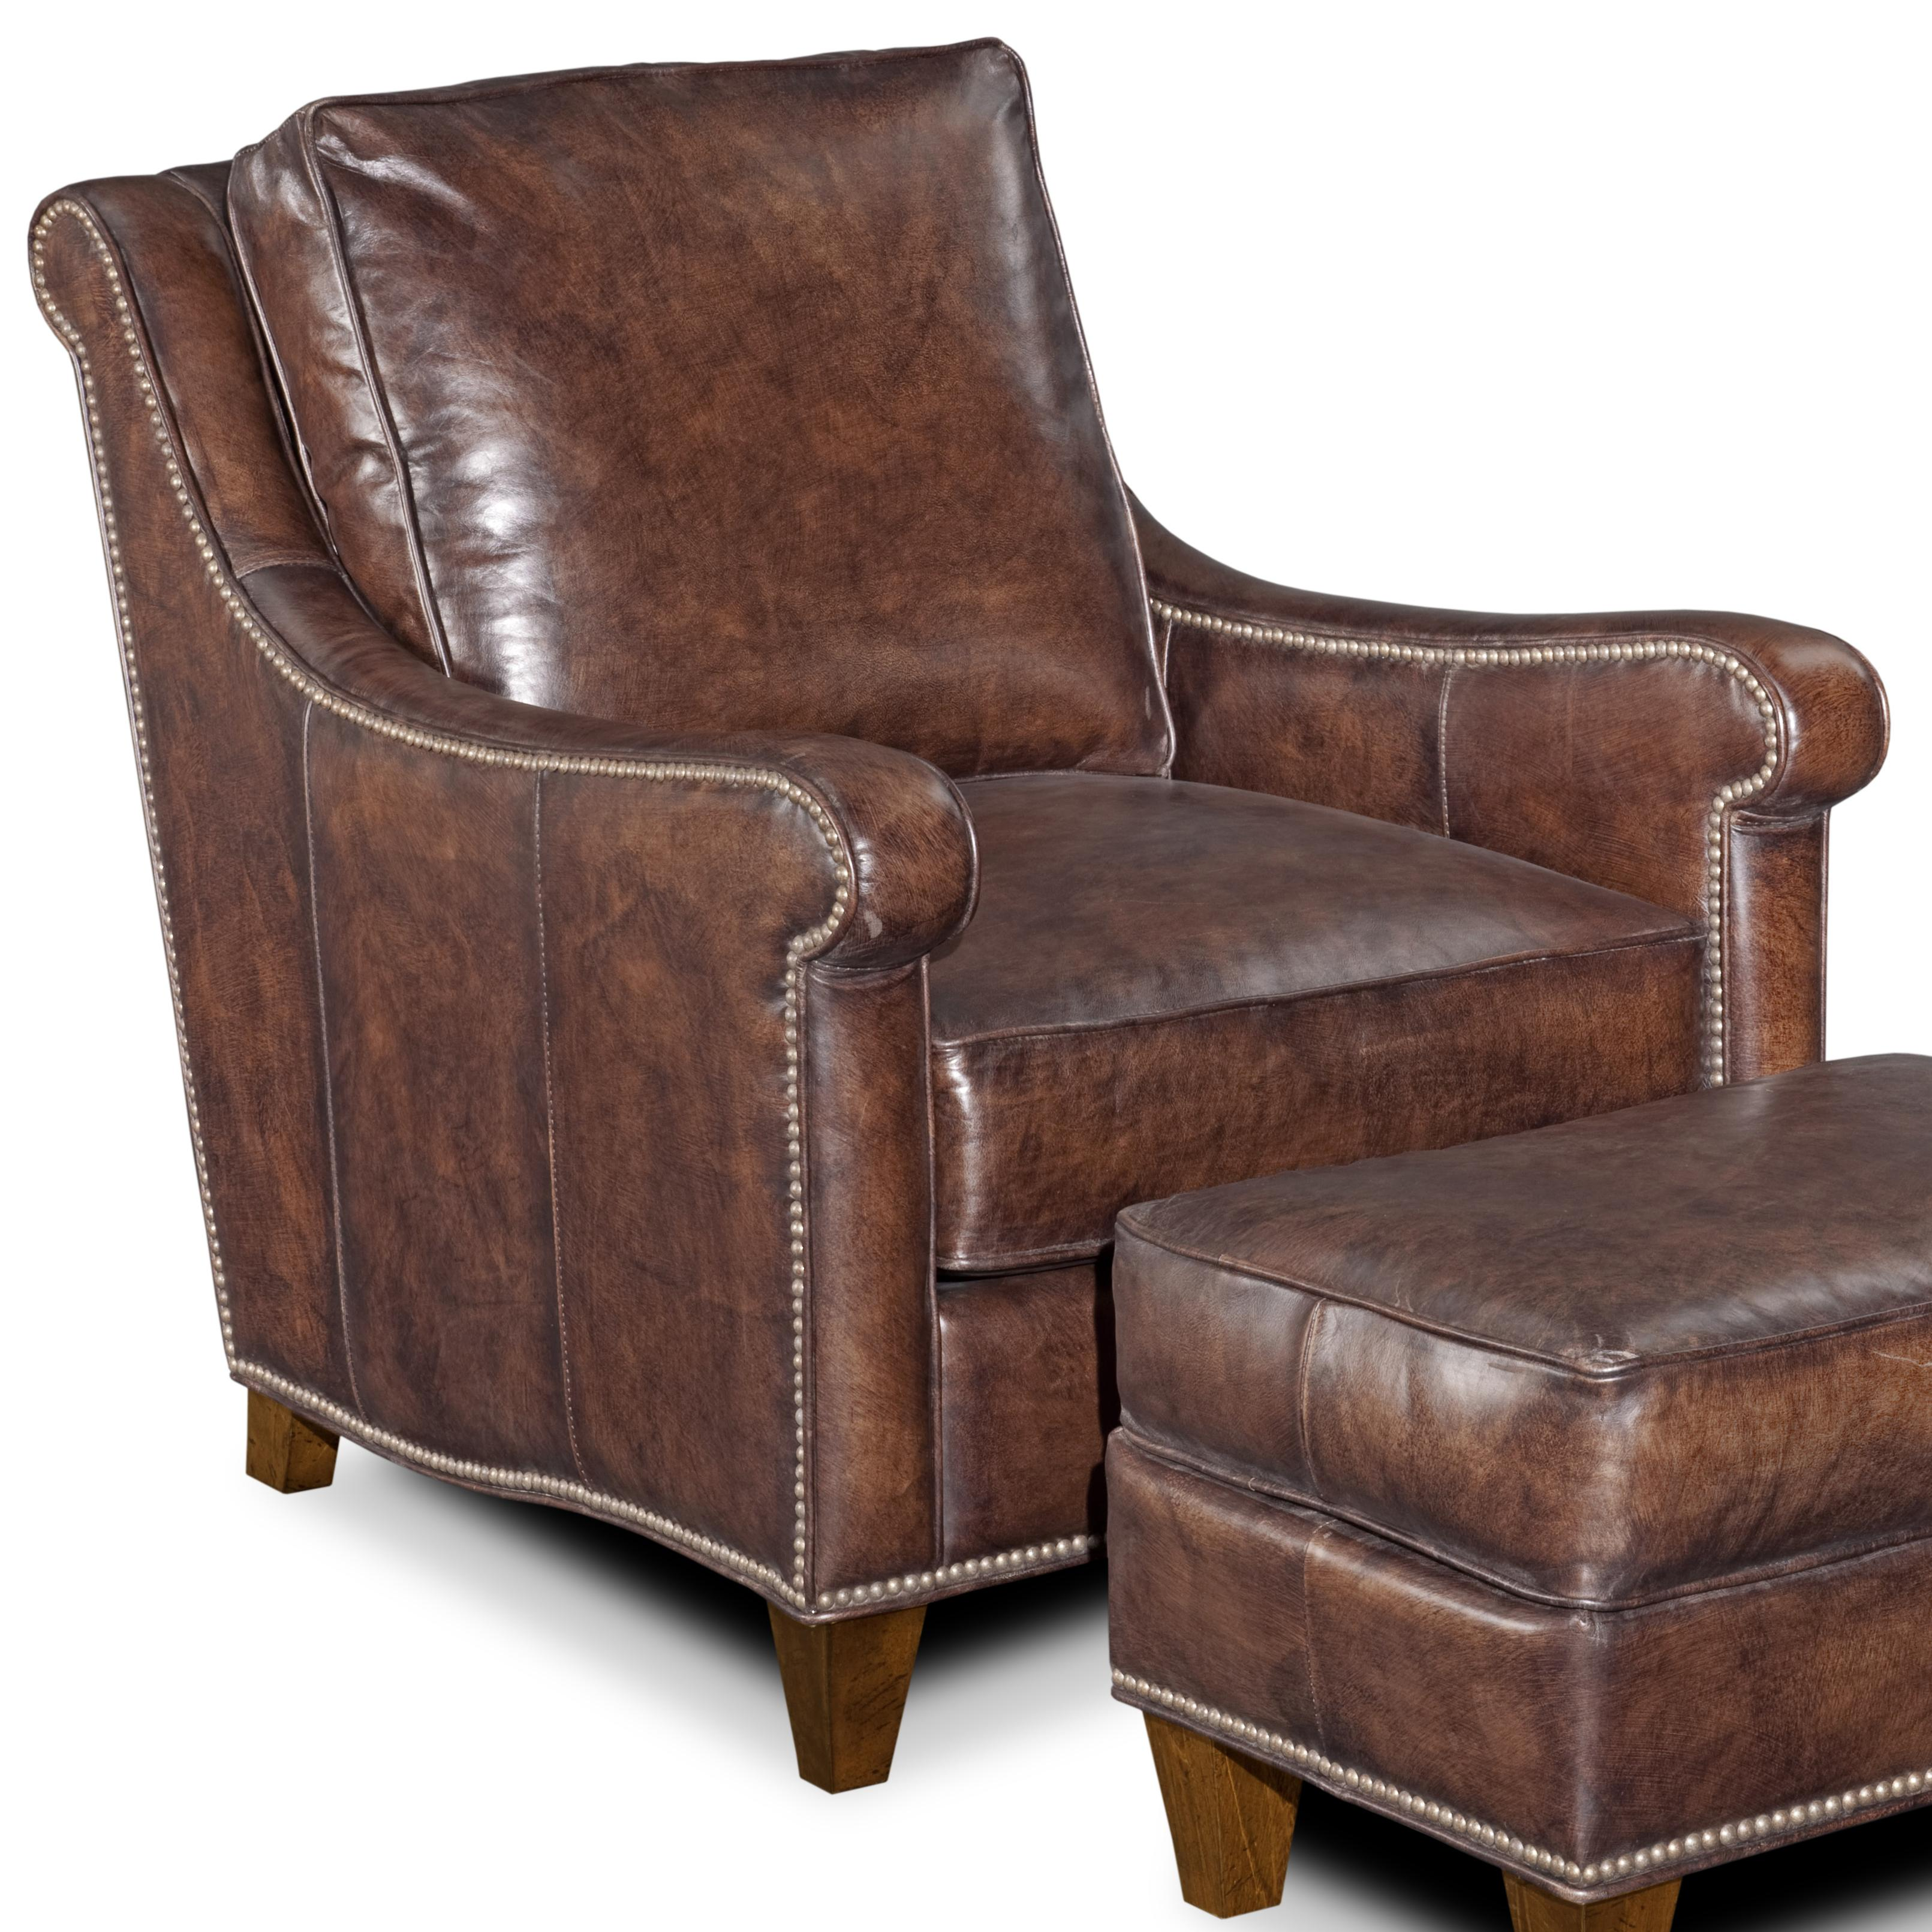 Delicieux Gryphon Comfortable Classic Leather Club Chair With Nail Head Trim By Bradington  Young